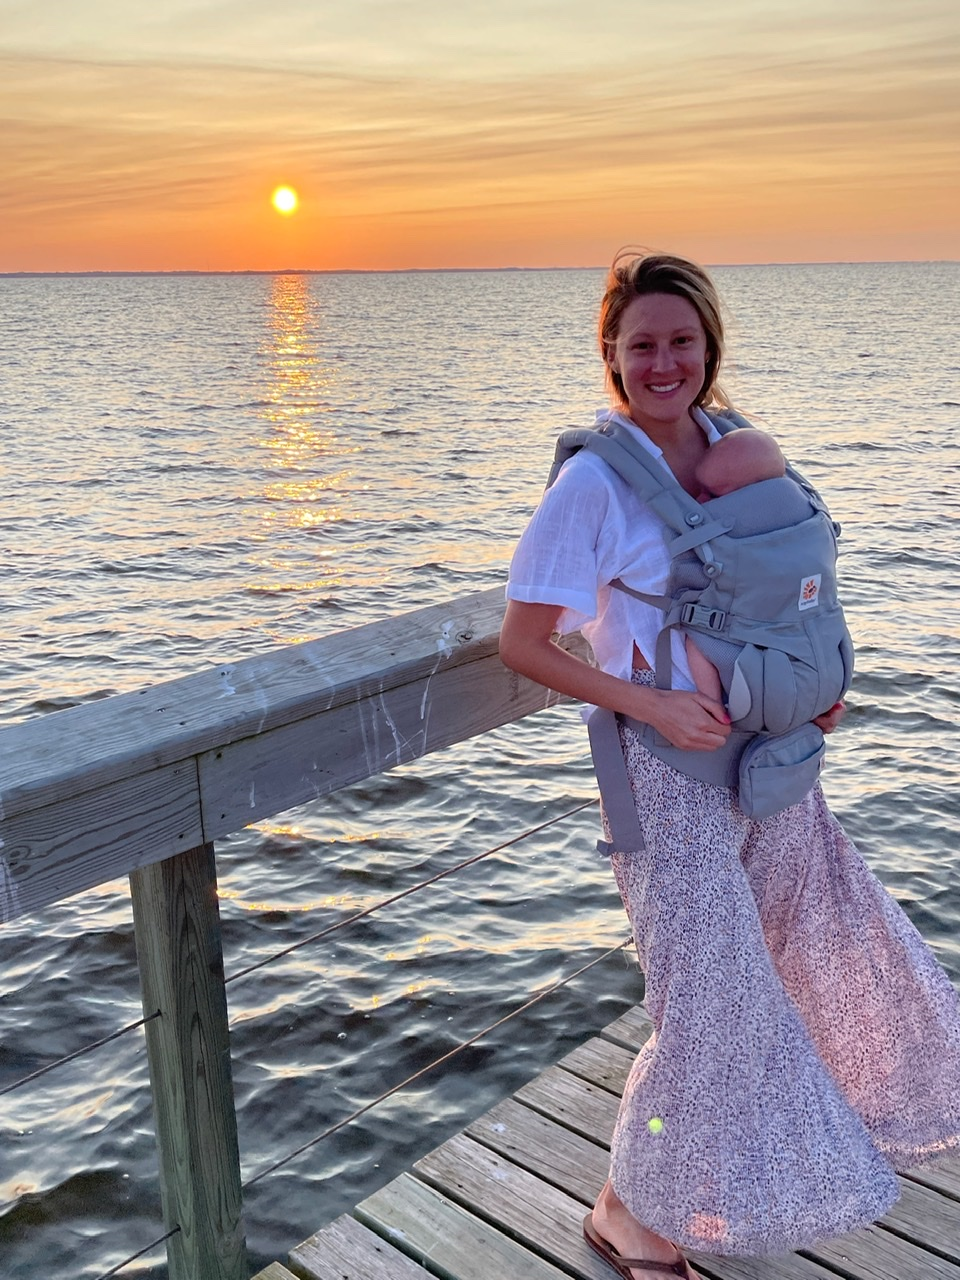 Staying up past bedtime thanks to my ergobaby carrier which makes travel and getting off routine with a baby much easier!